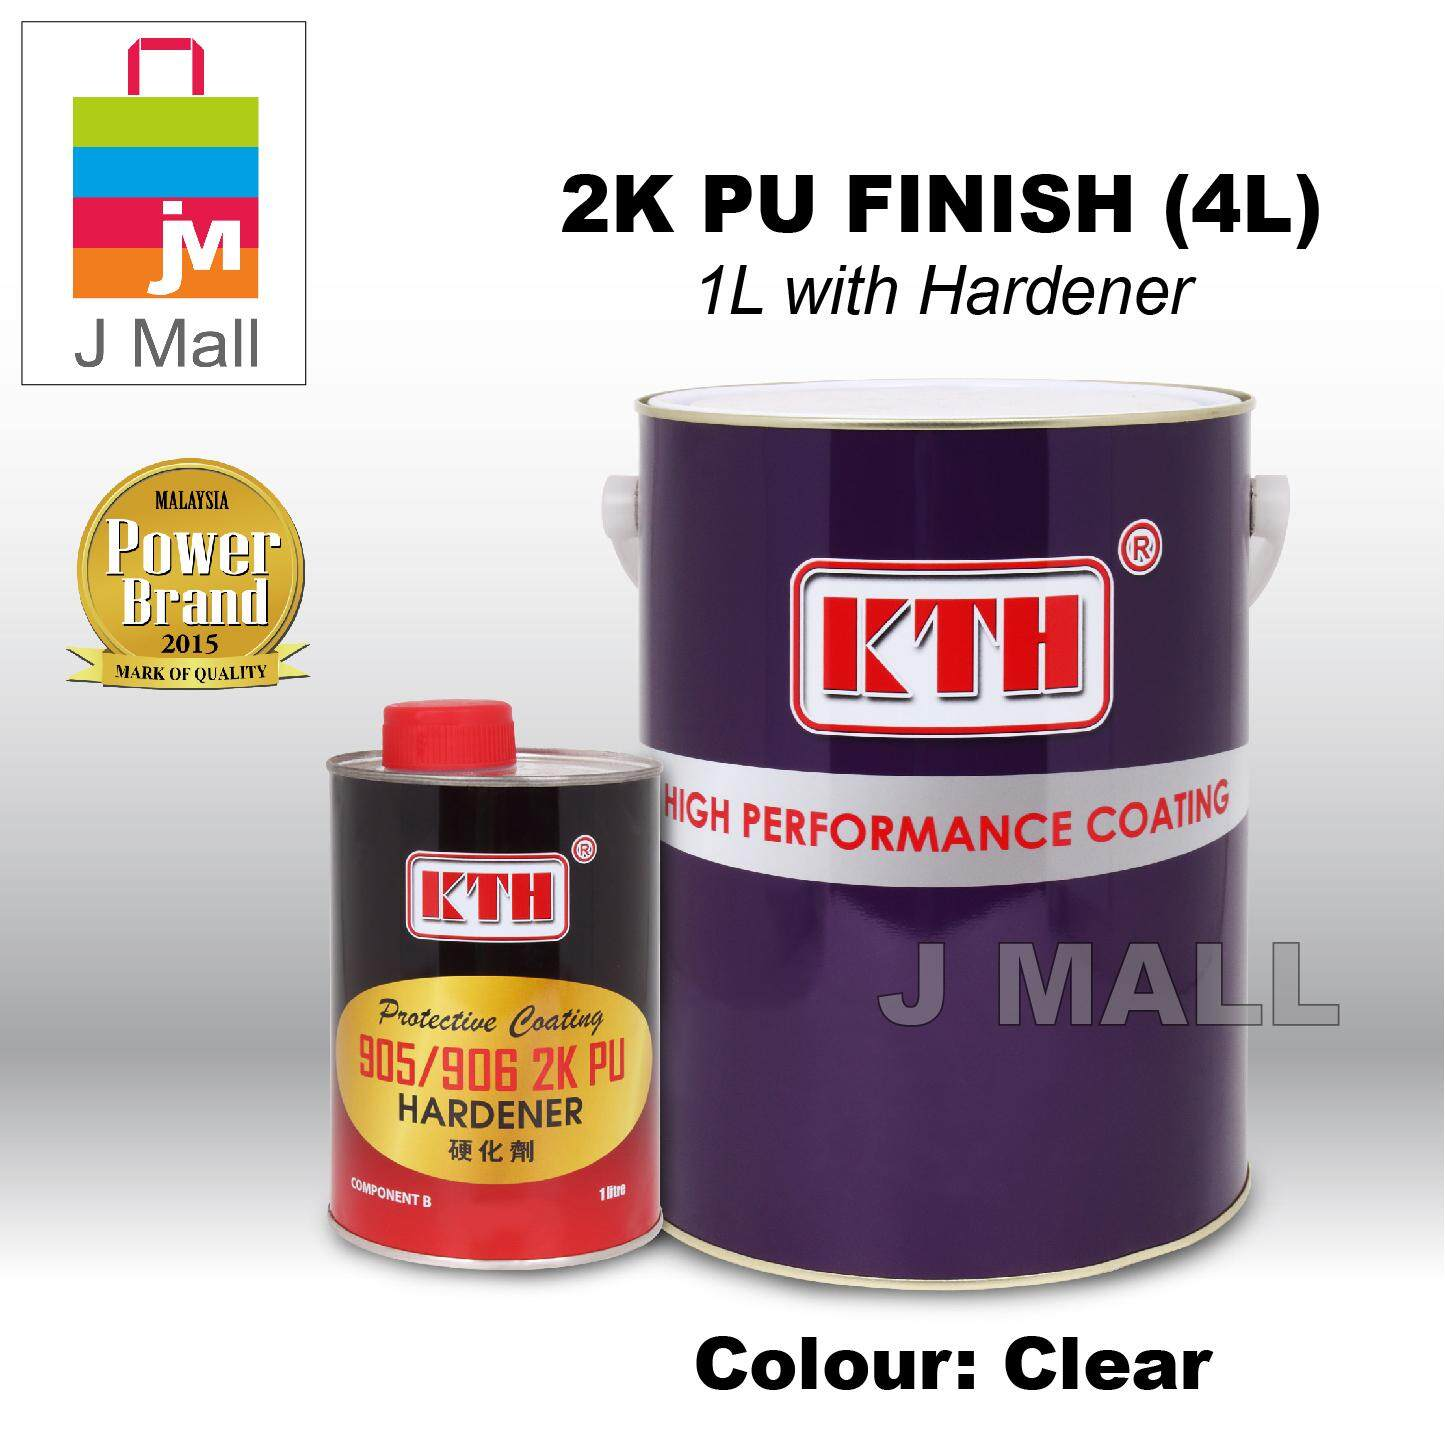 KTH Paint Interior Protective Coating 2K PU Finish Clear - 5L